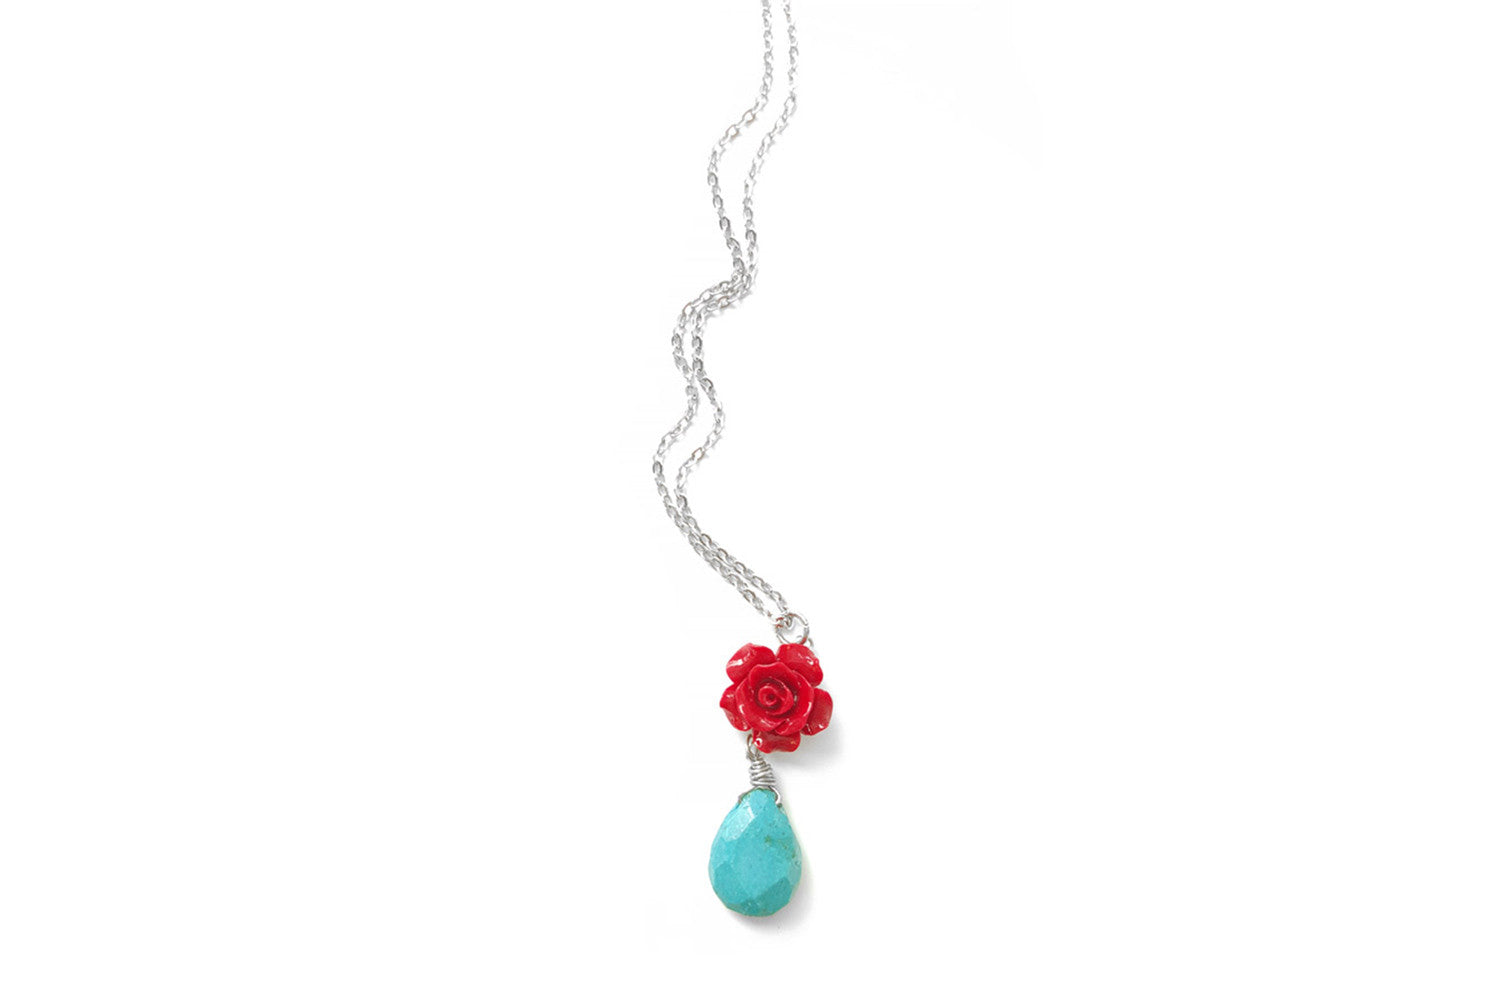 Rose Turquoise Necklace